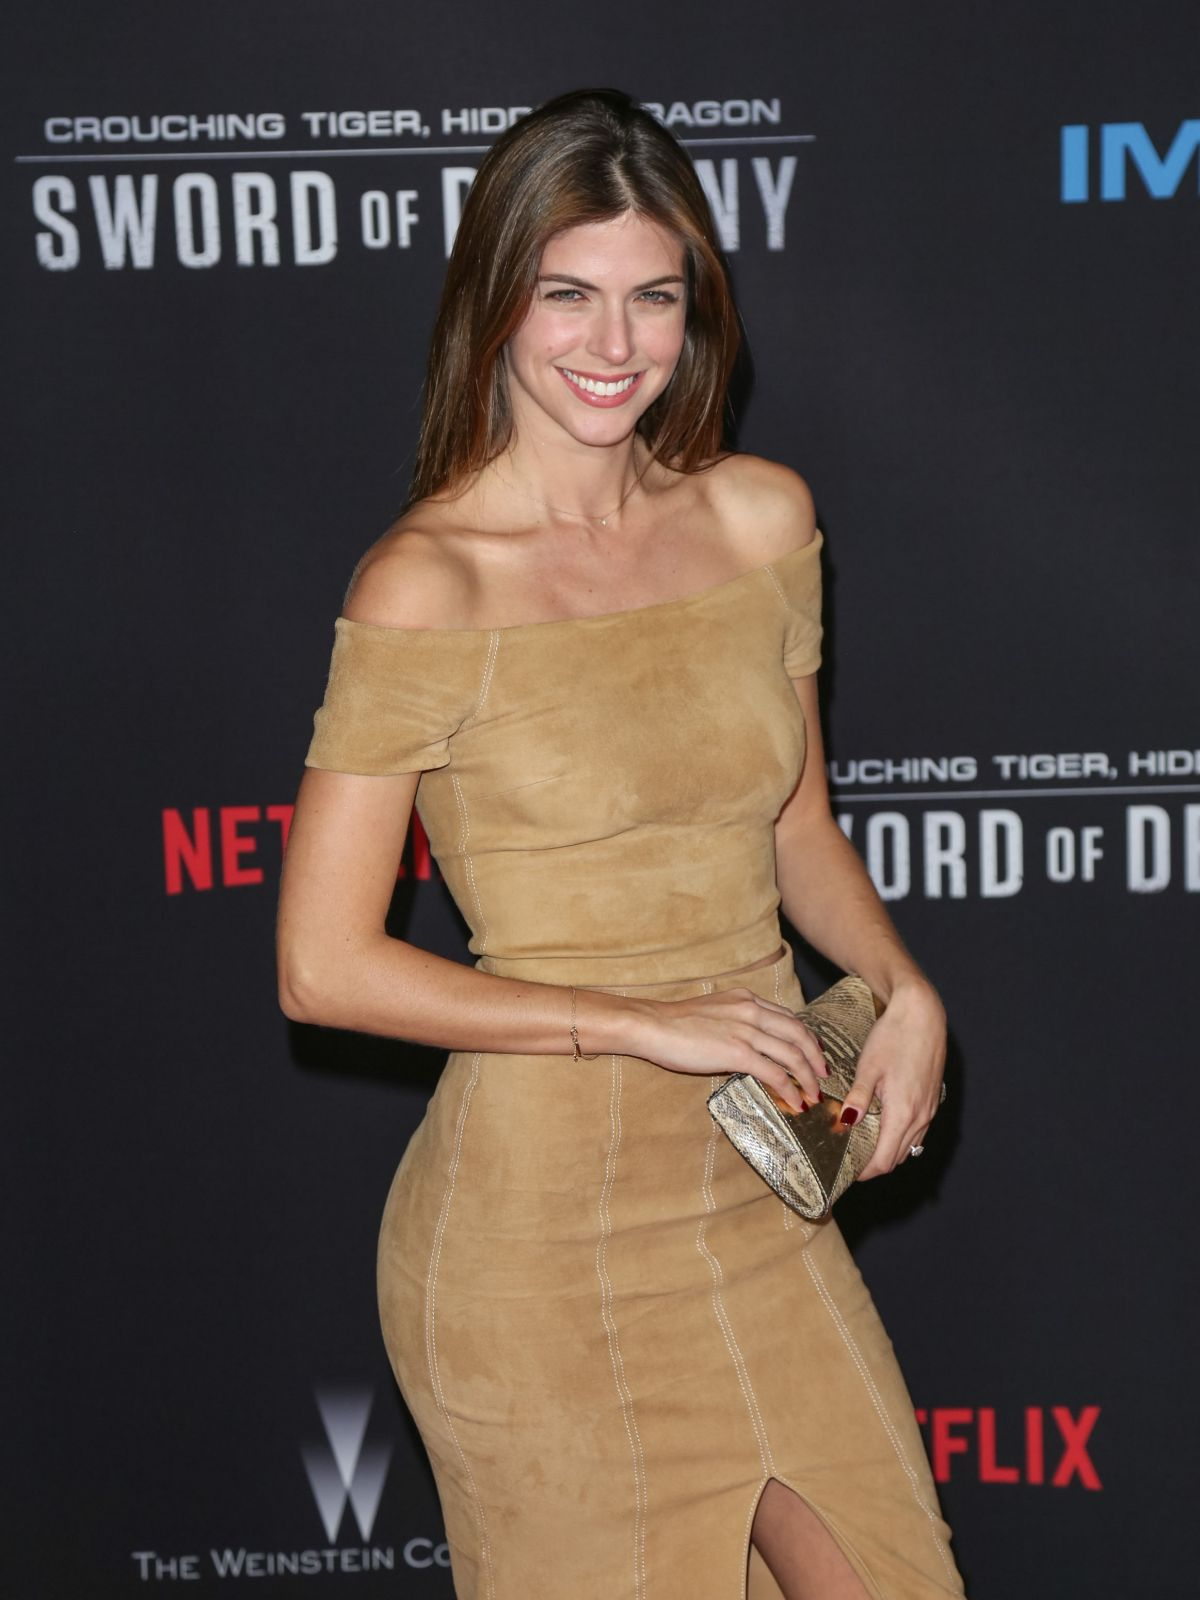 STEPHANIE CAYO at Crouching Tiger, Hidden Dragon: Sword of Destiny Premiere in Universal City 02/22/2016